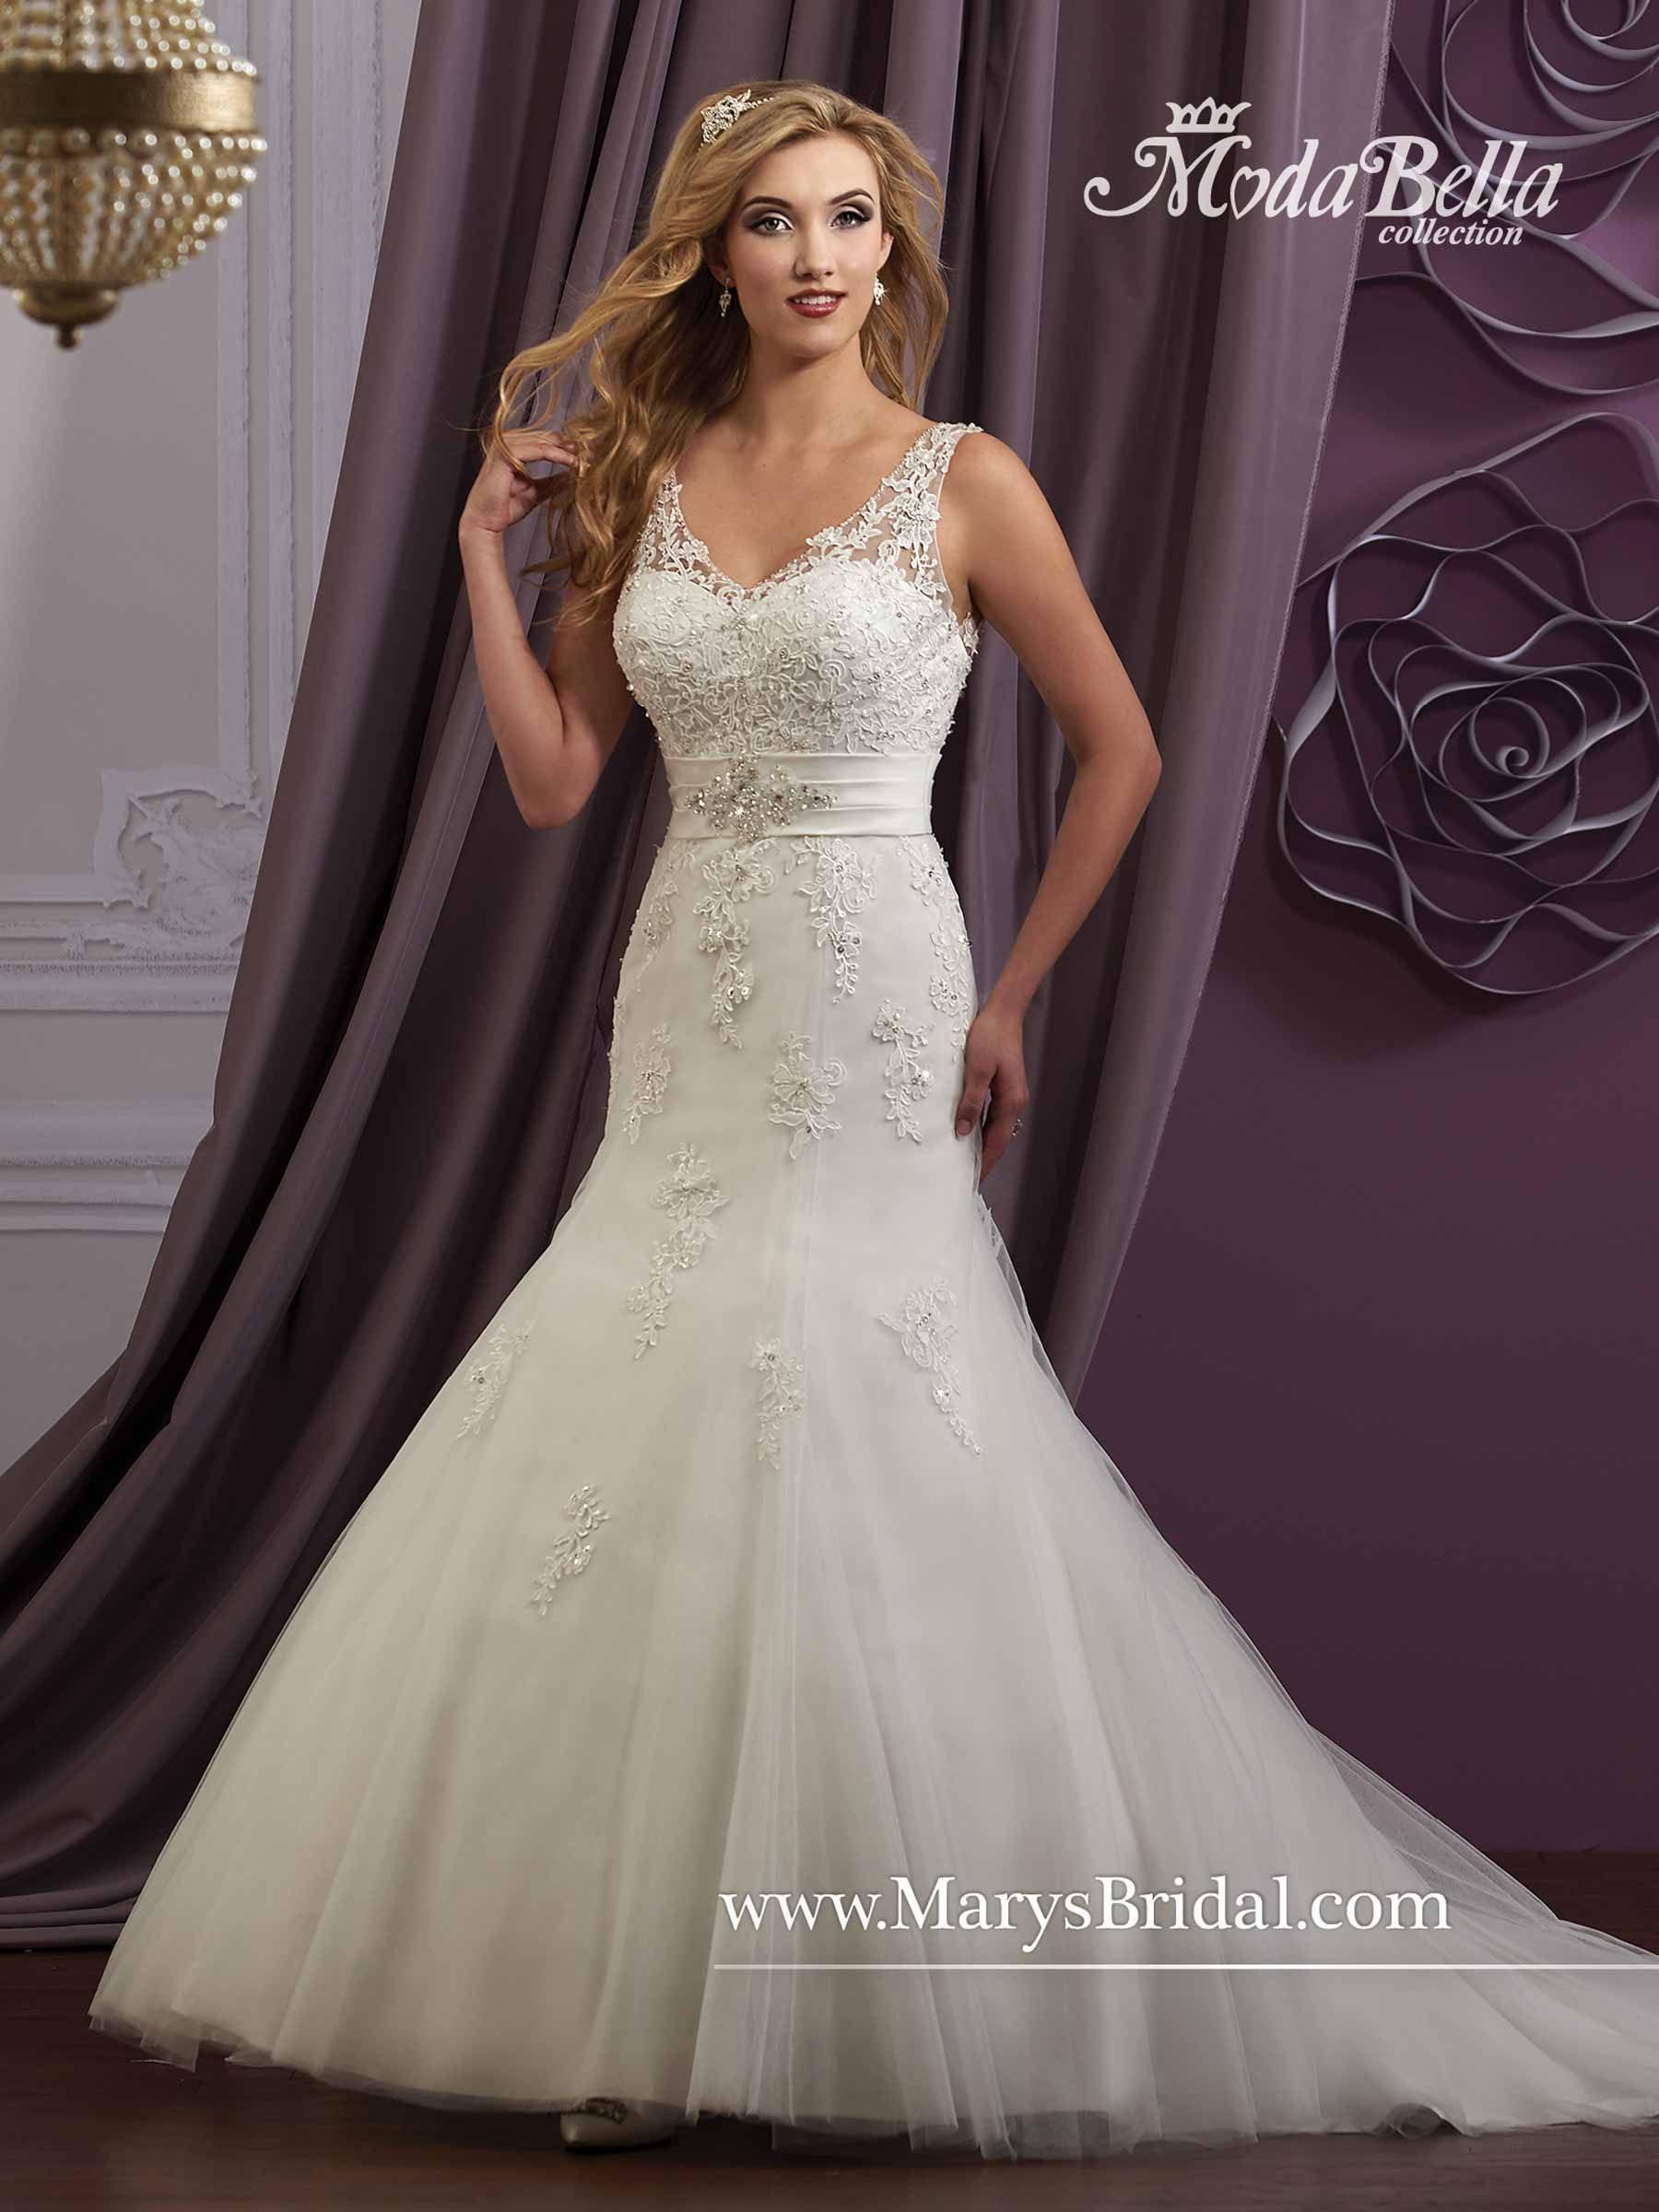 White cocktail dress for wedding  Style Y sz  in White  Maryus Wedding Gowns  Pinterest